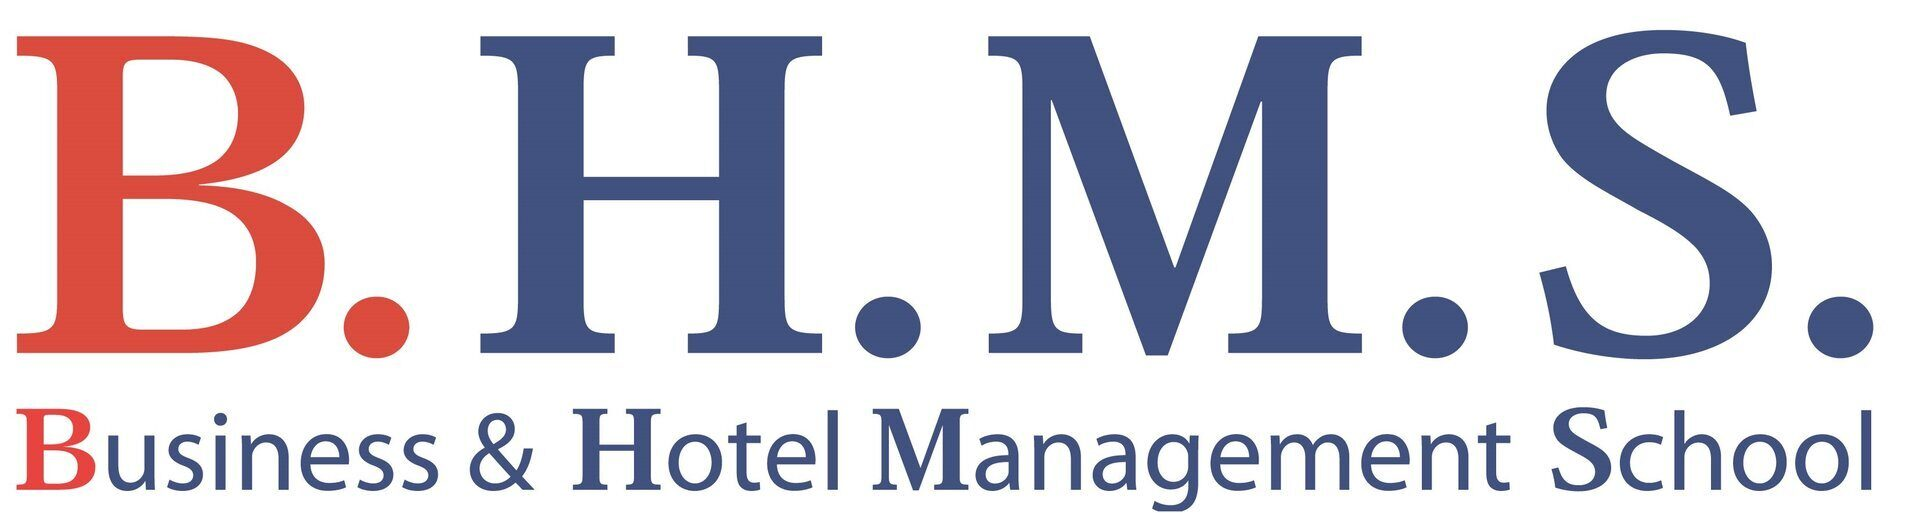 Business_and_Hotel_Management_School_logo